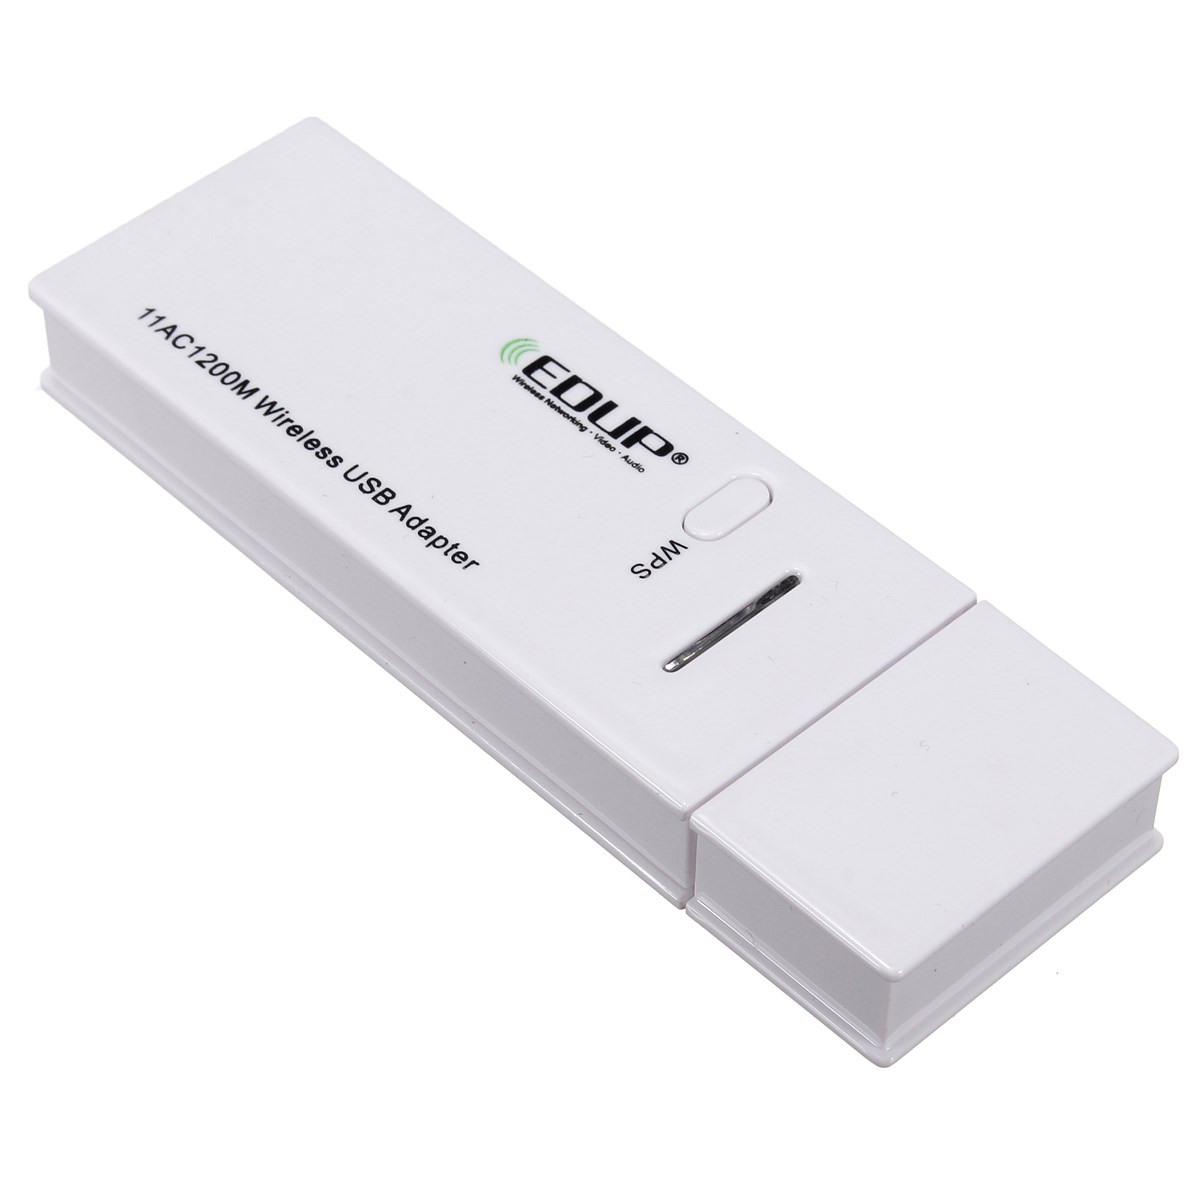 EP-AC1601 USB3.0 Wireless network card 1200 Mbps Wireless Adapter 2.4GHz/5.8GHz WLAN networks 802.11ac/b/g/n Dual-Band(China (Mainland))